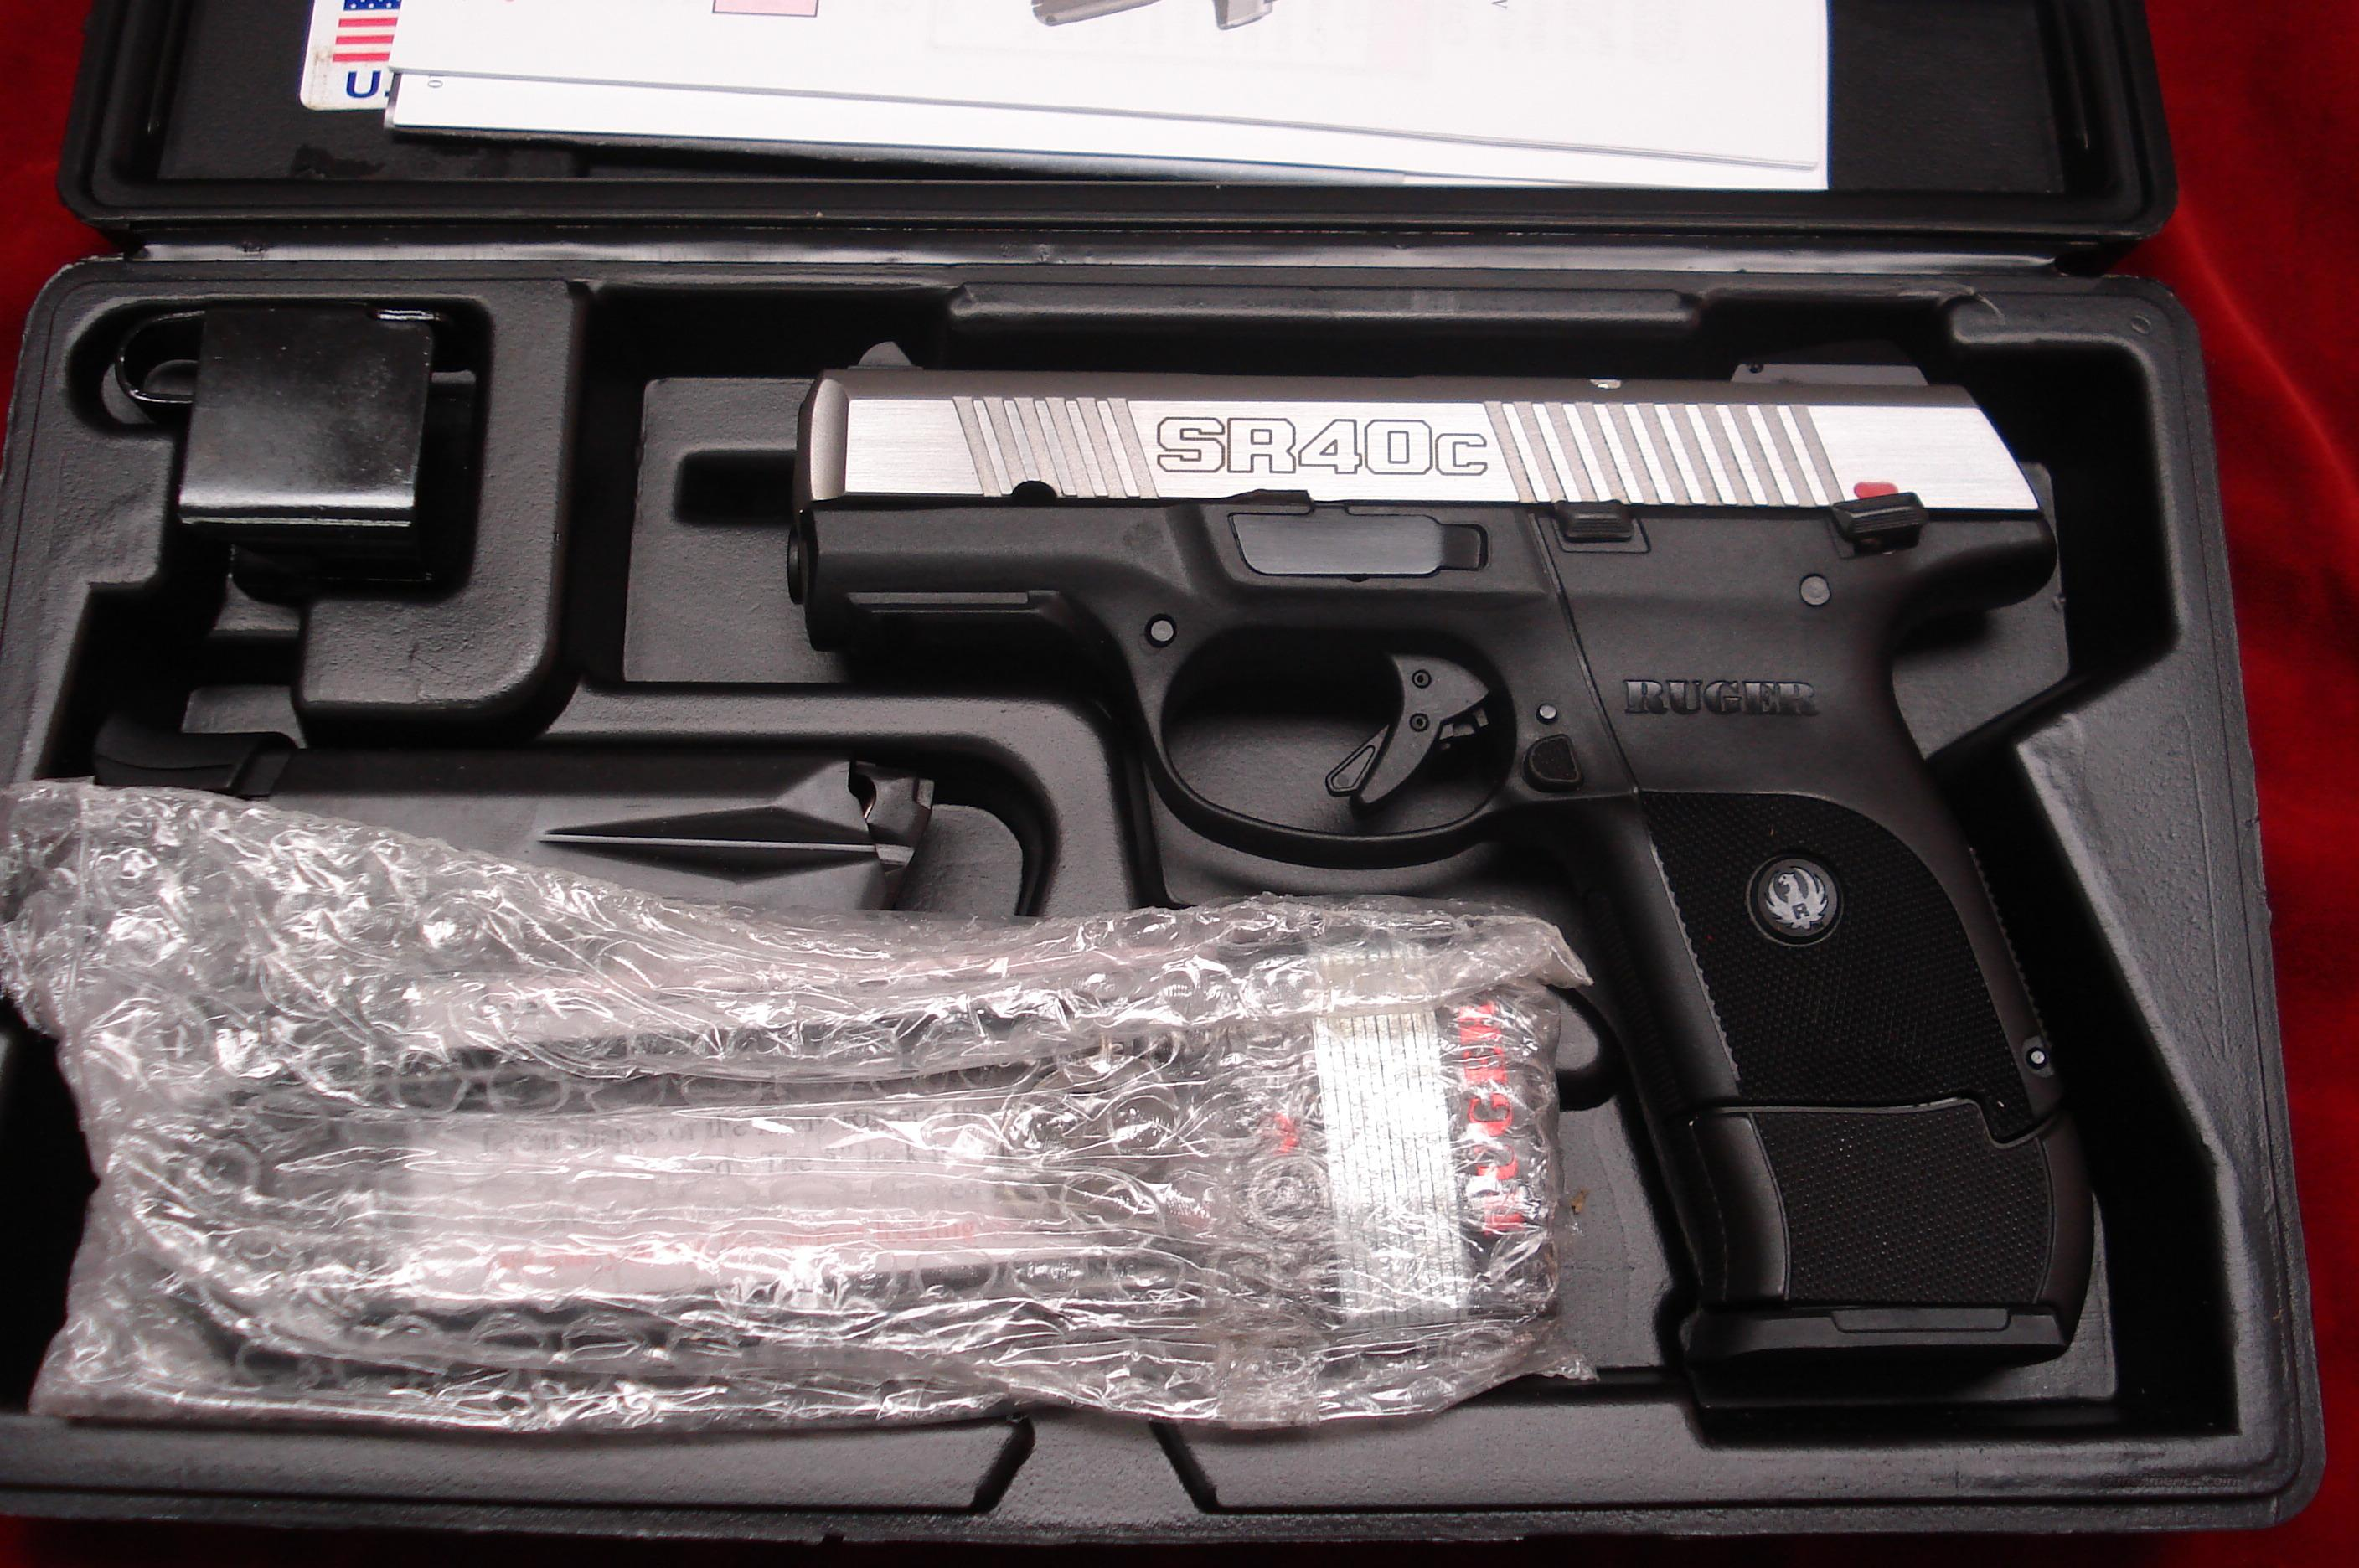 RUGER SR40C (COMPACT) STAINLESS NEW (IN STOCK)! (KSR40C)  Guns > Pistols > Ruger Semi-Auto Pistols > SR Family > SR40C